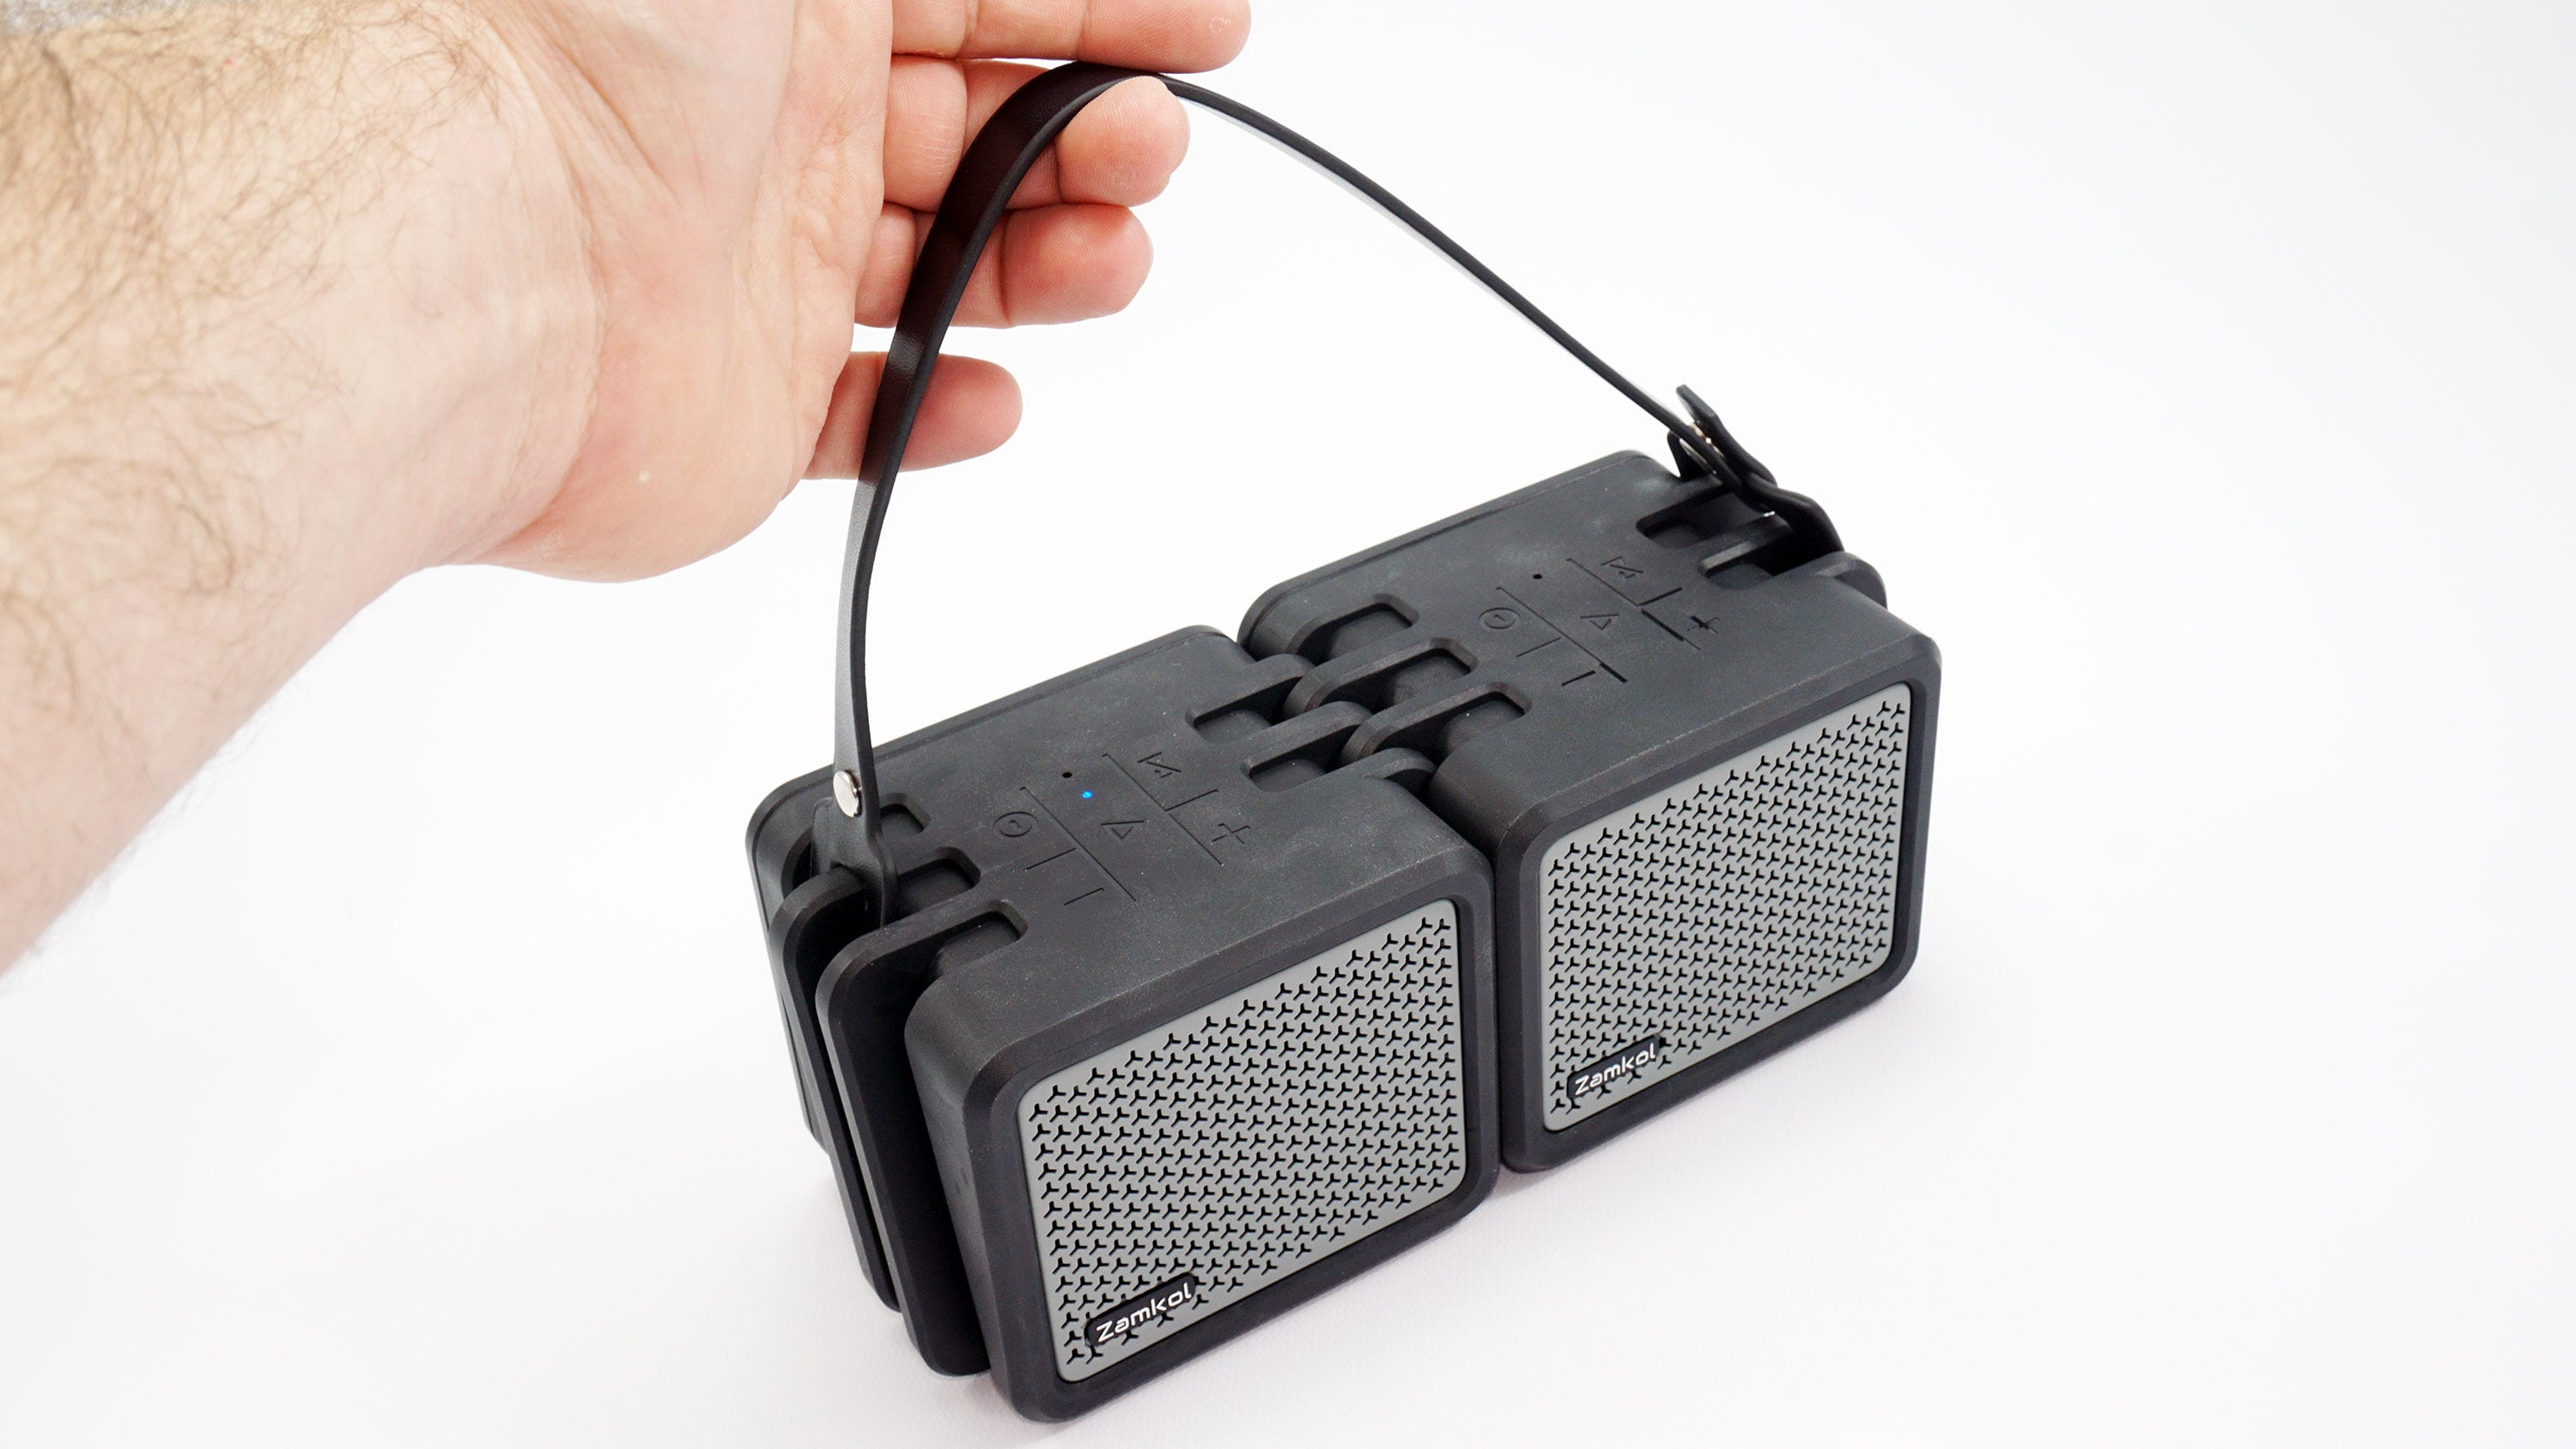 A hand holding the Zamkol speakers by the faux leather strap.